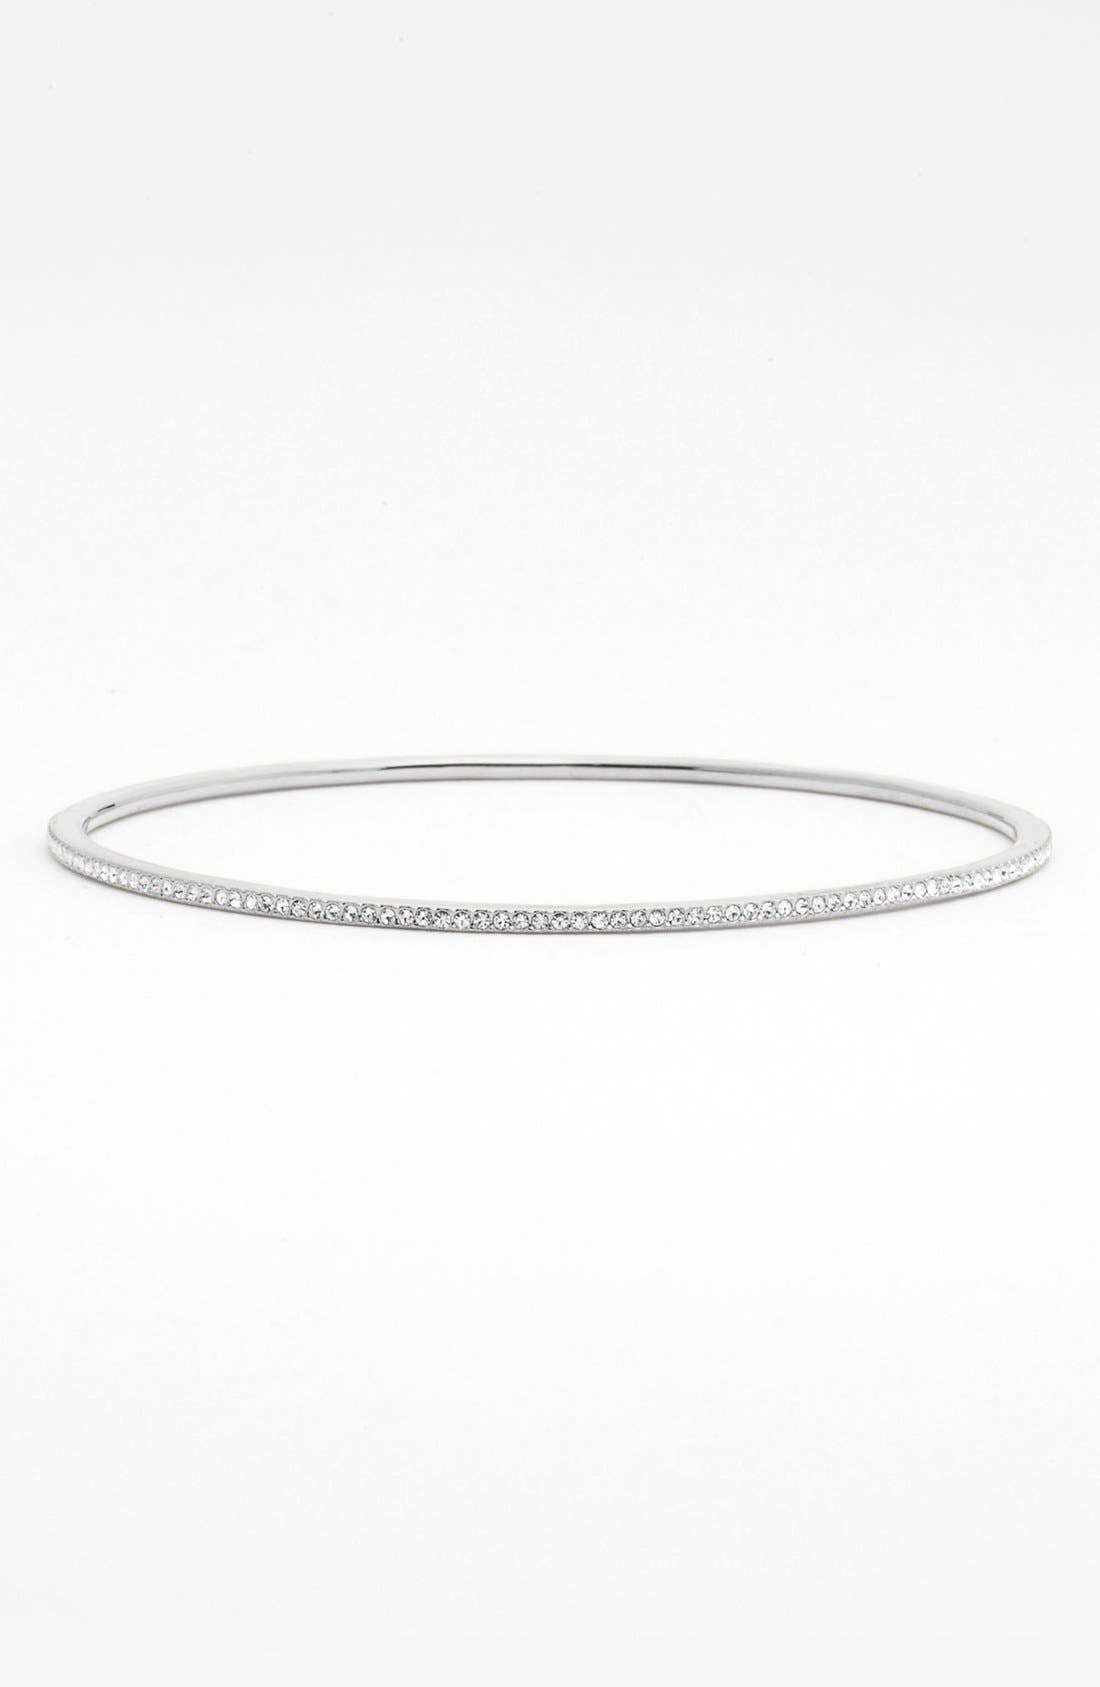 Main Image - Nadri Thin Prong Set Crystal Bangle